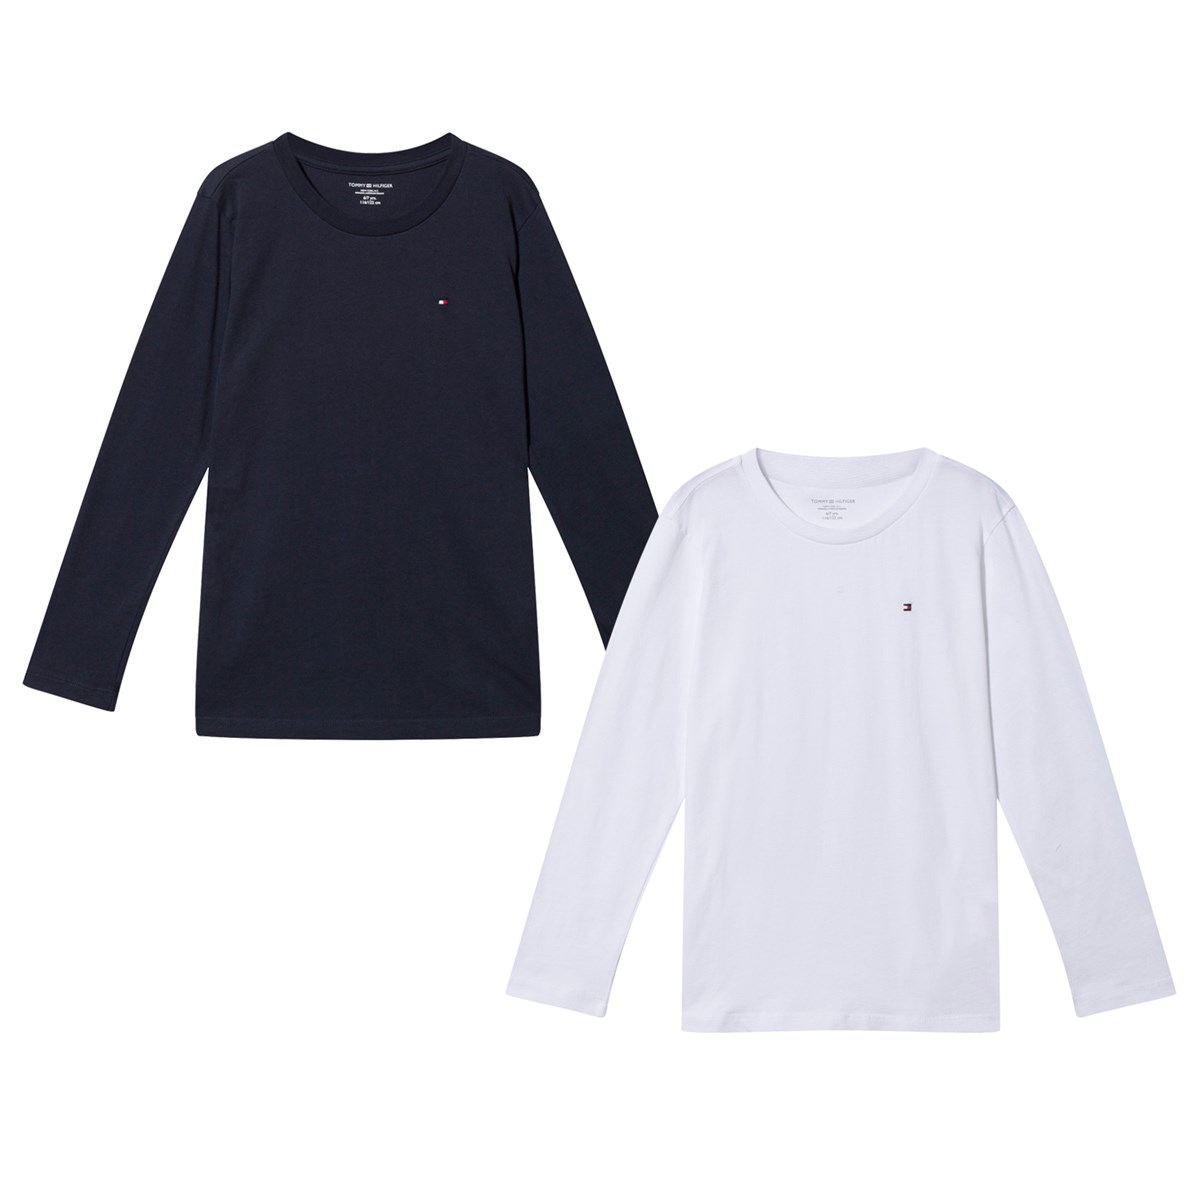 Two Pack of Navy and White Long Sleeve Tees Tommy Hilfiger